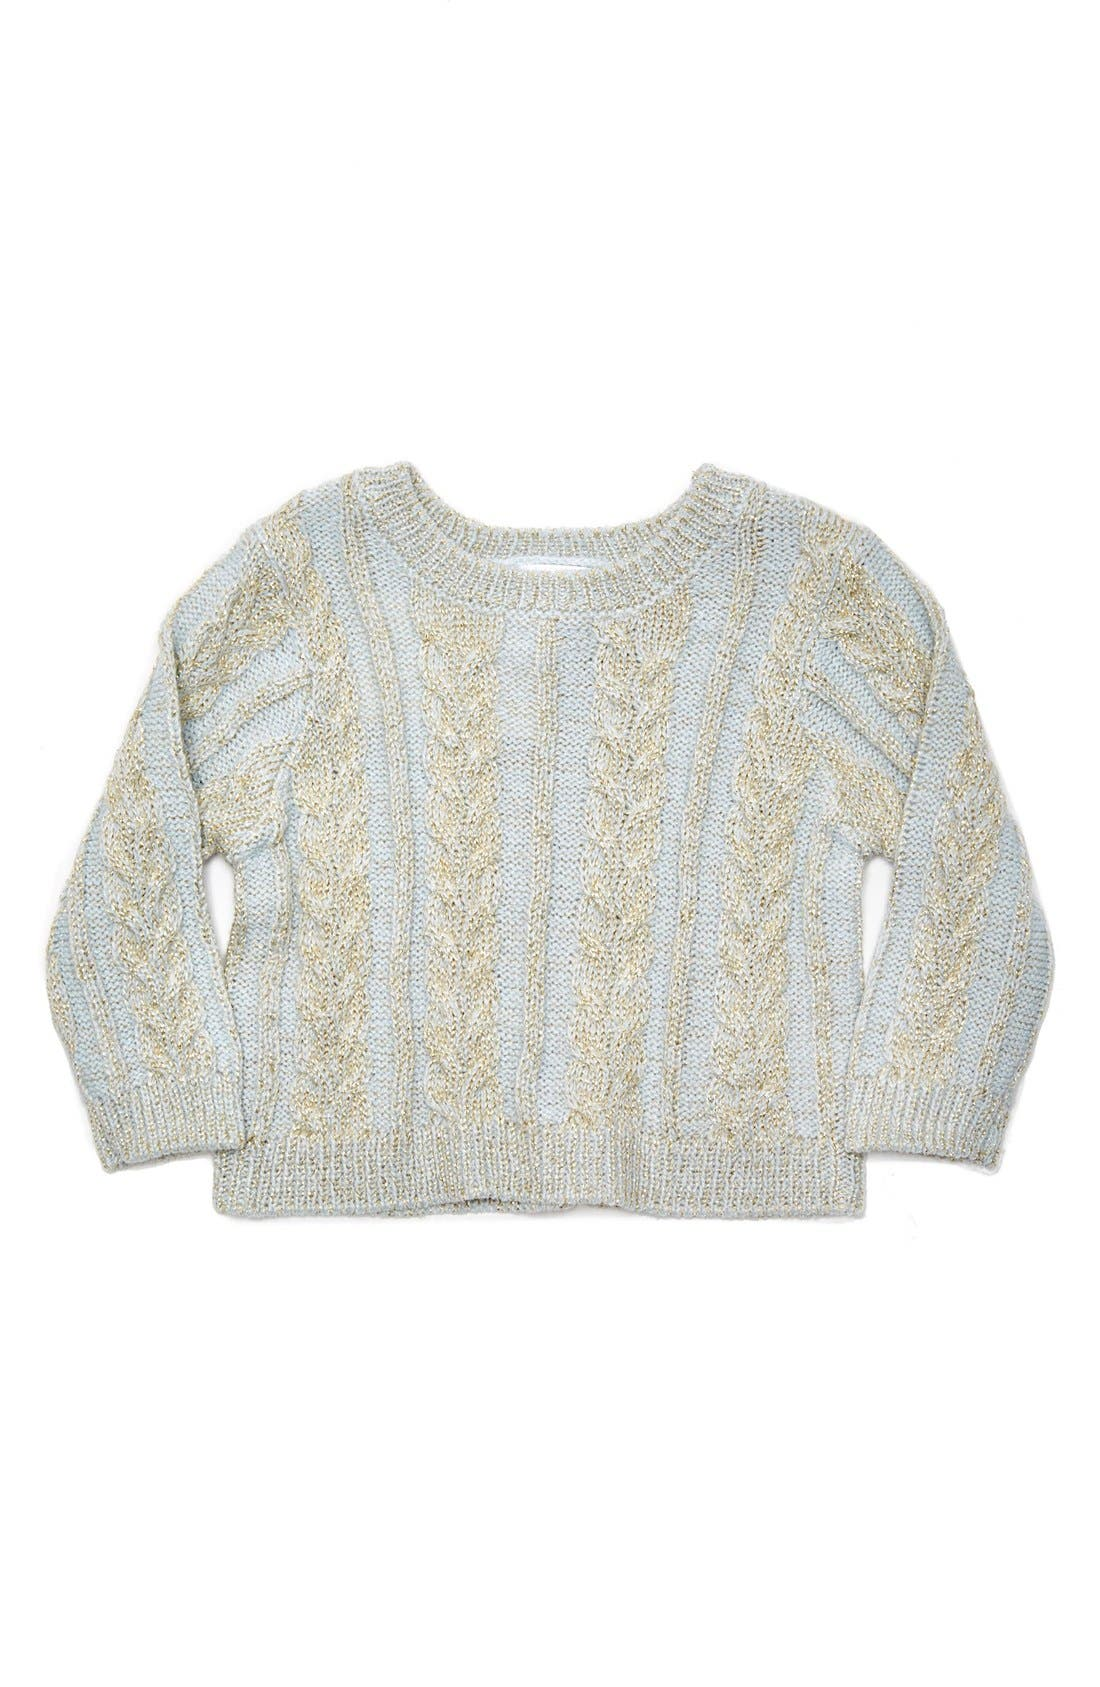 Shop for cable knit kids sweaters online at Target. Free shipping on purchases over $35 and save 5% every day with your Target REDcard.